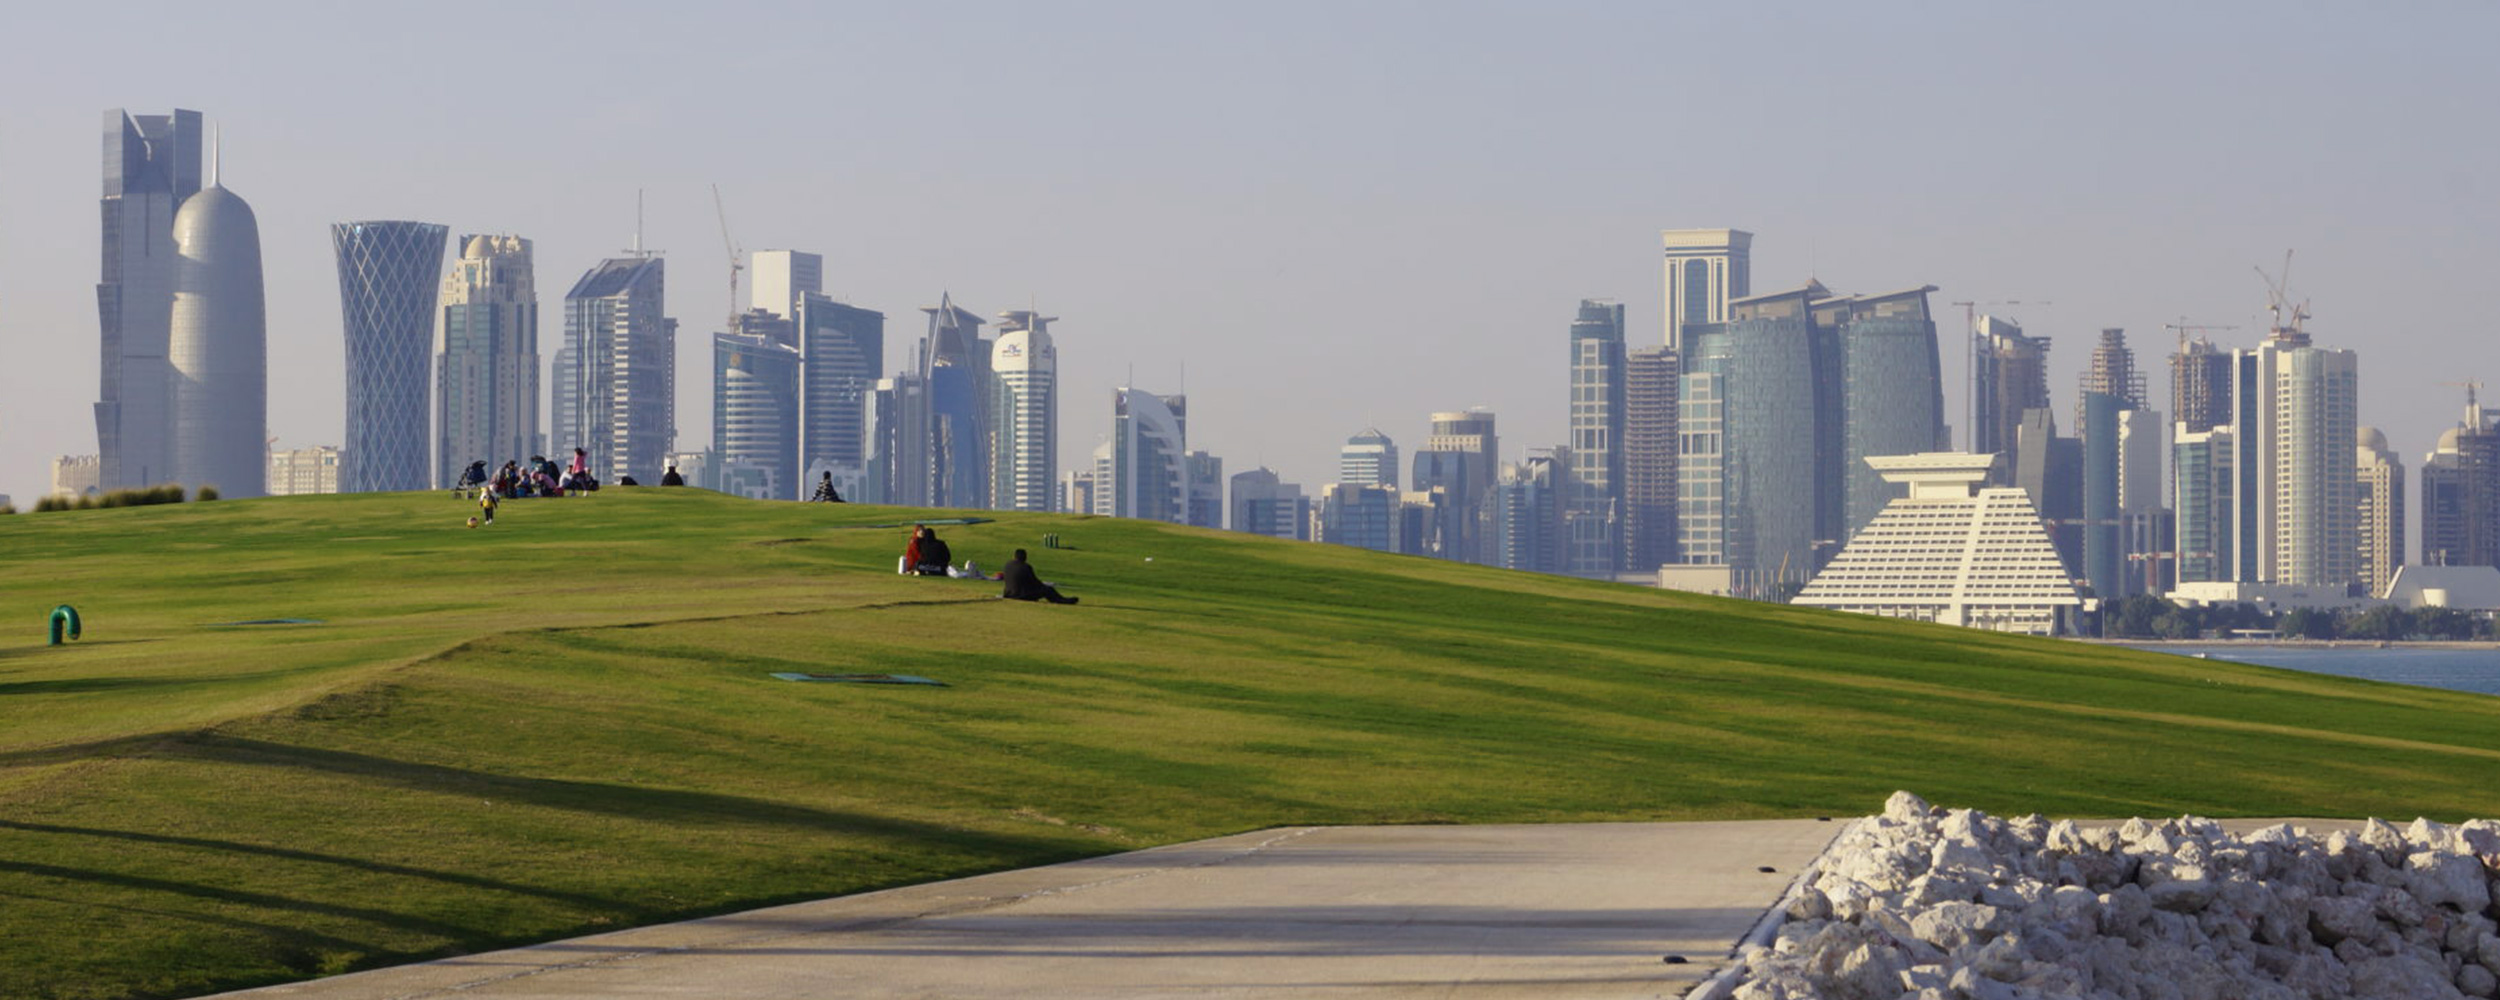 Waterfront public spaces, Doha. © Anna Grichting